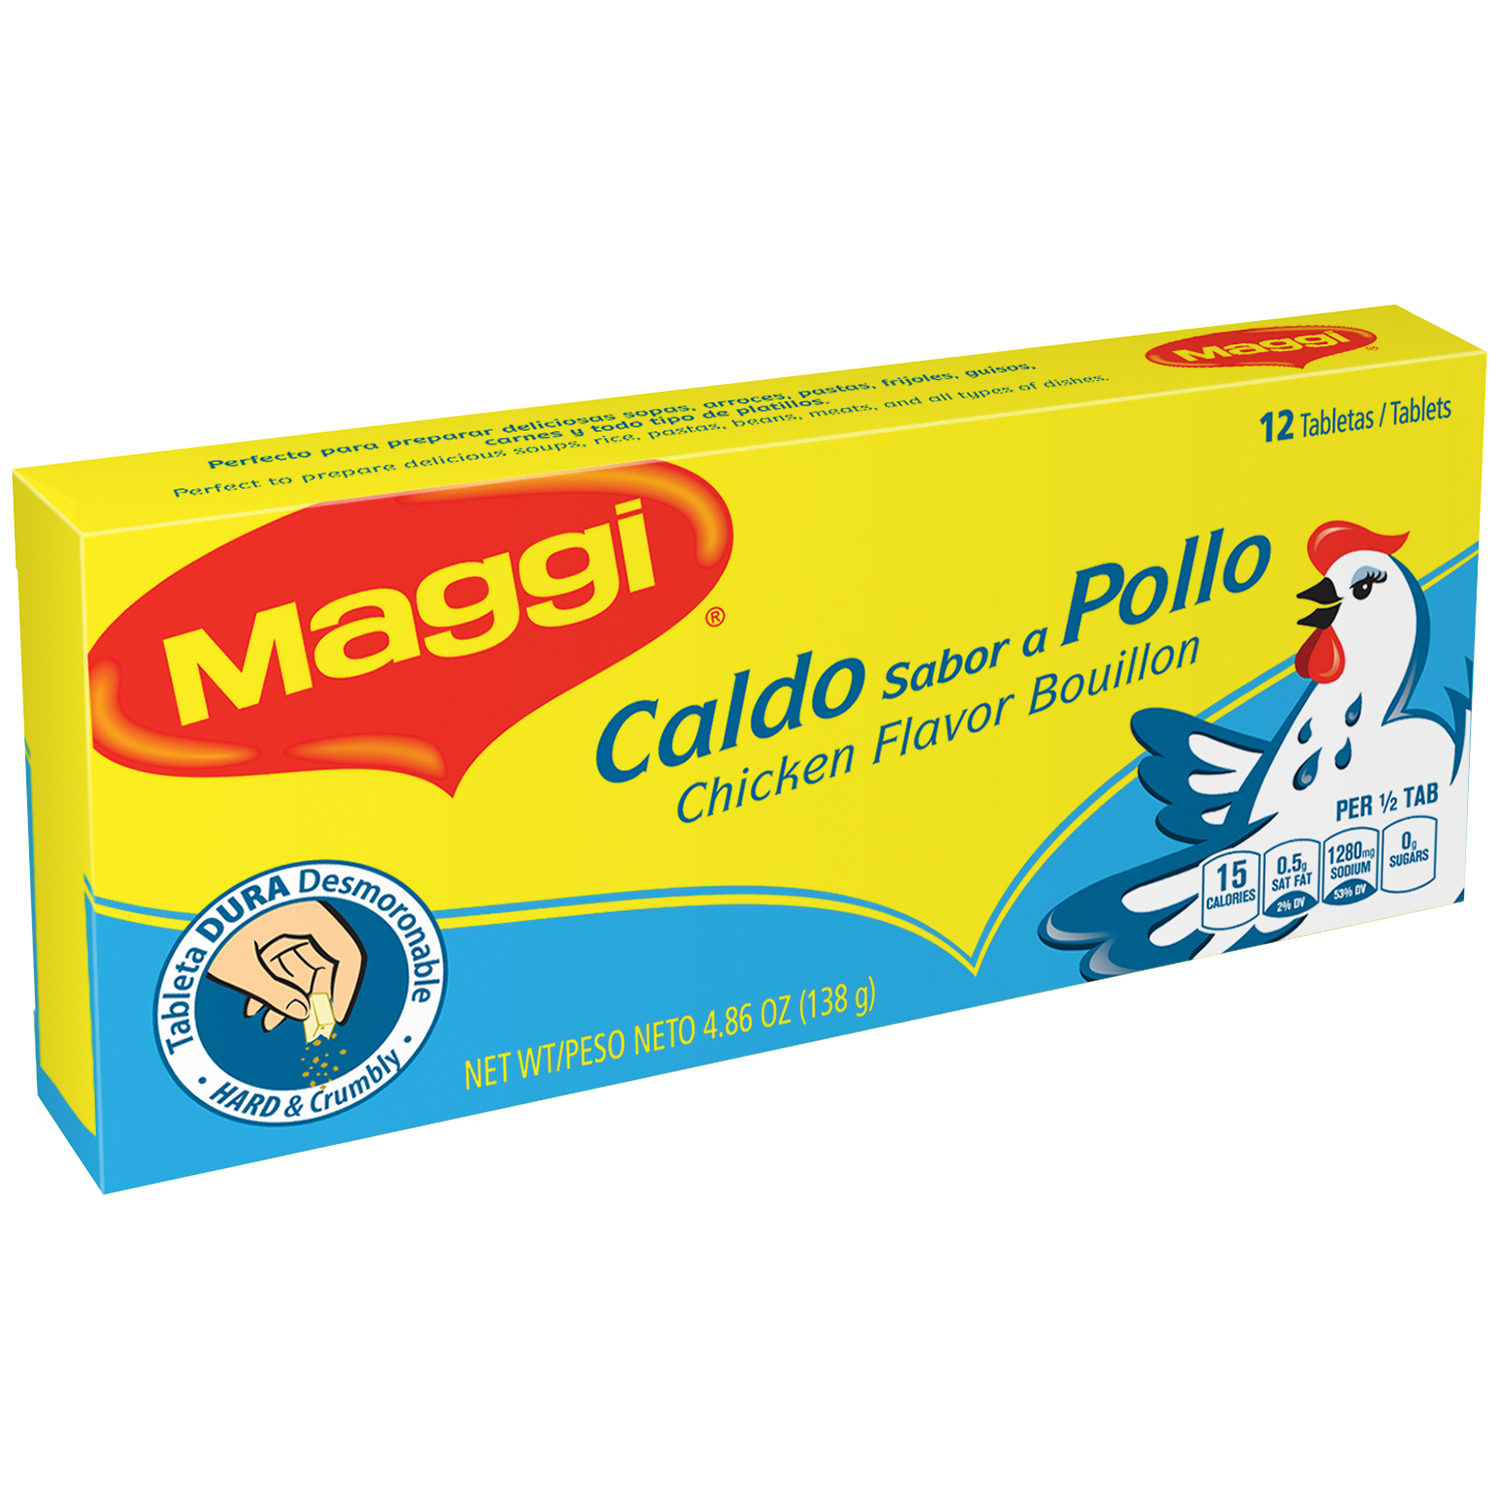 MAGGI Chicken Flavor Bouillon Tablets 4.86 oz. Box